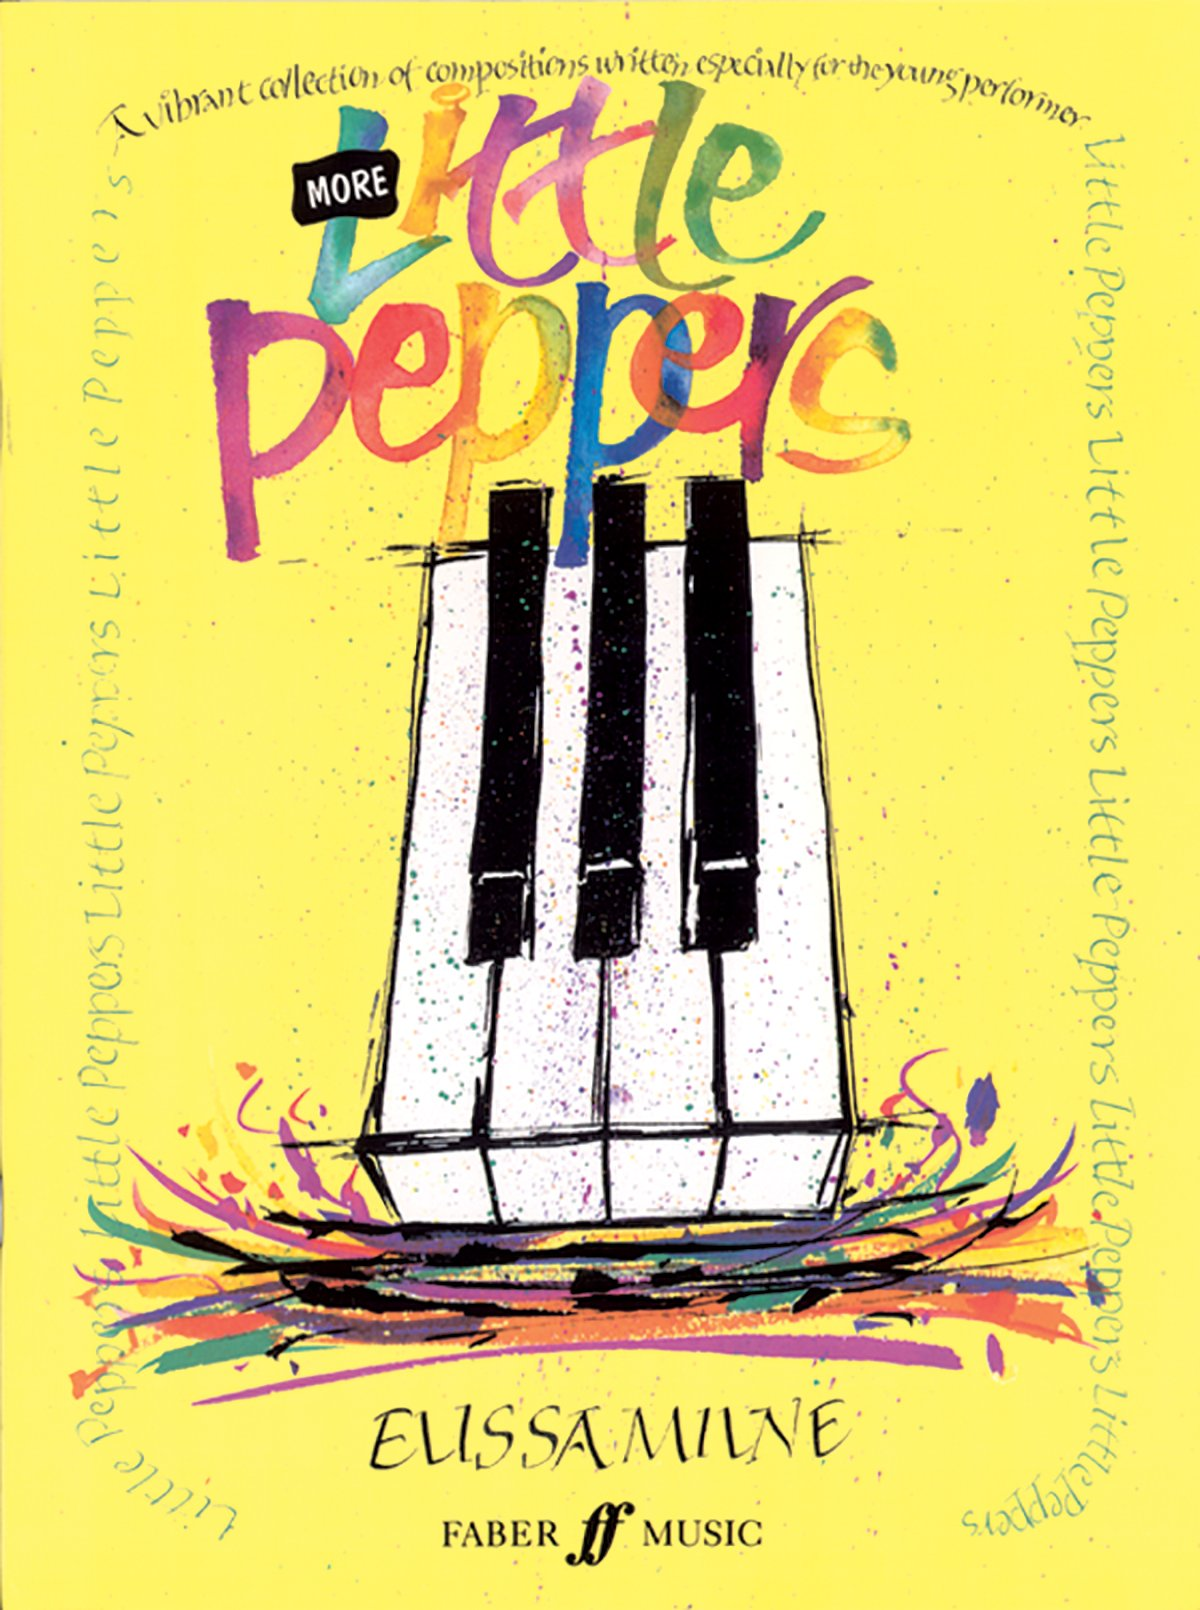 Download More Little Peppers: A Vibrant Collection of Compositions Written Especially for the Young Performer (Faber Edition: Little Peppers) ebook